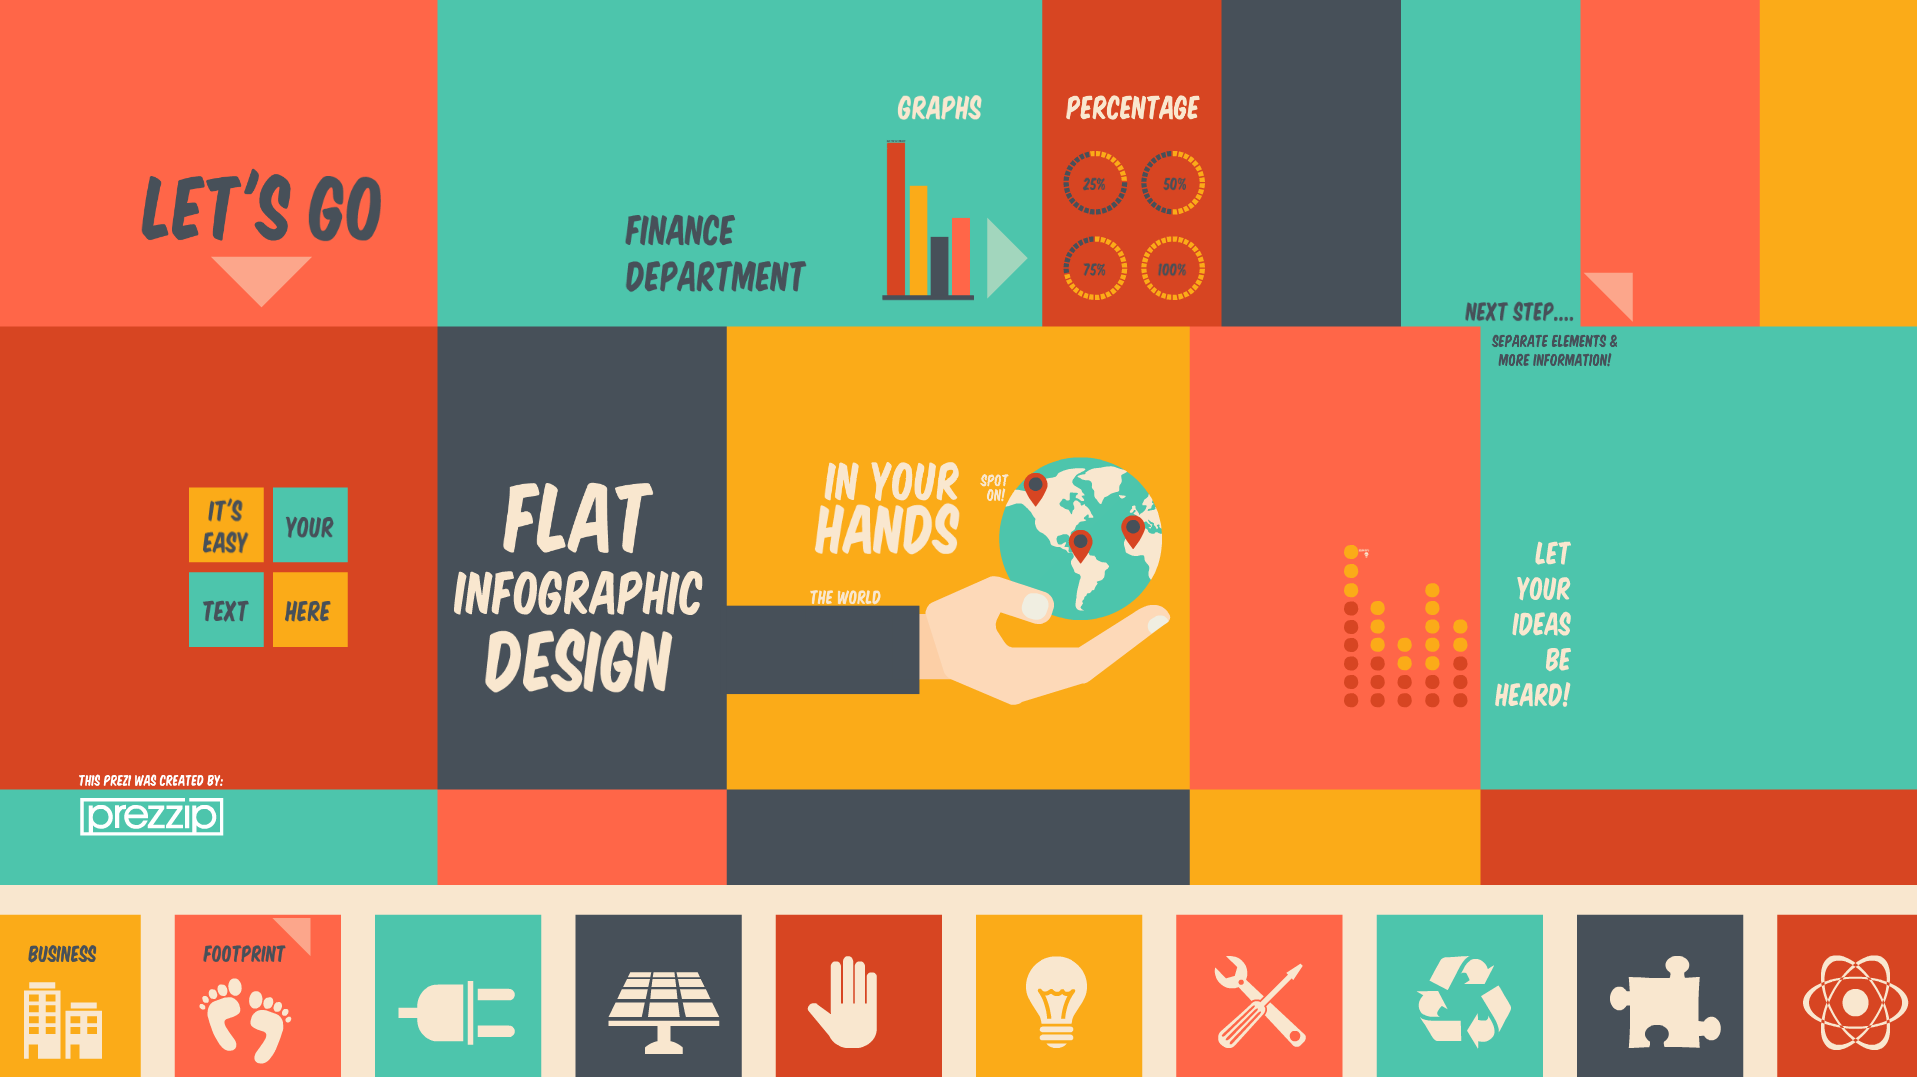 Flat Infographic Design Prezi Template All The Space You Need To